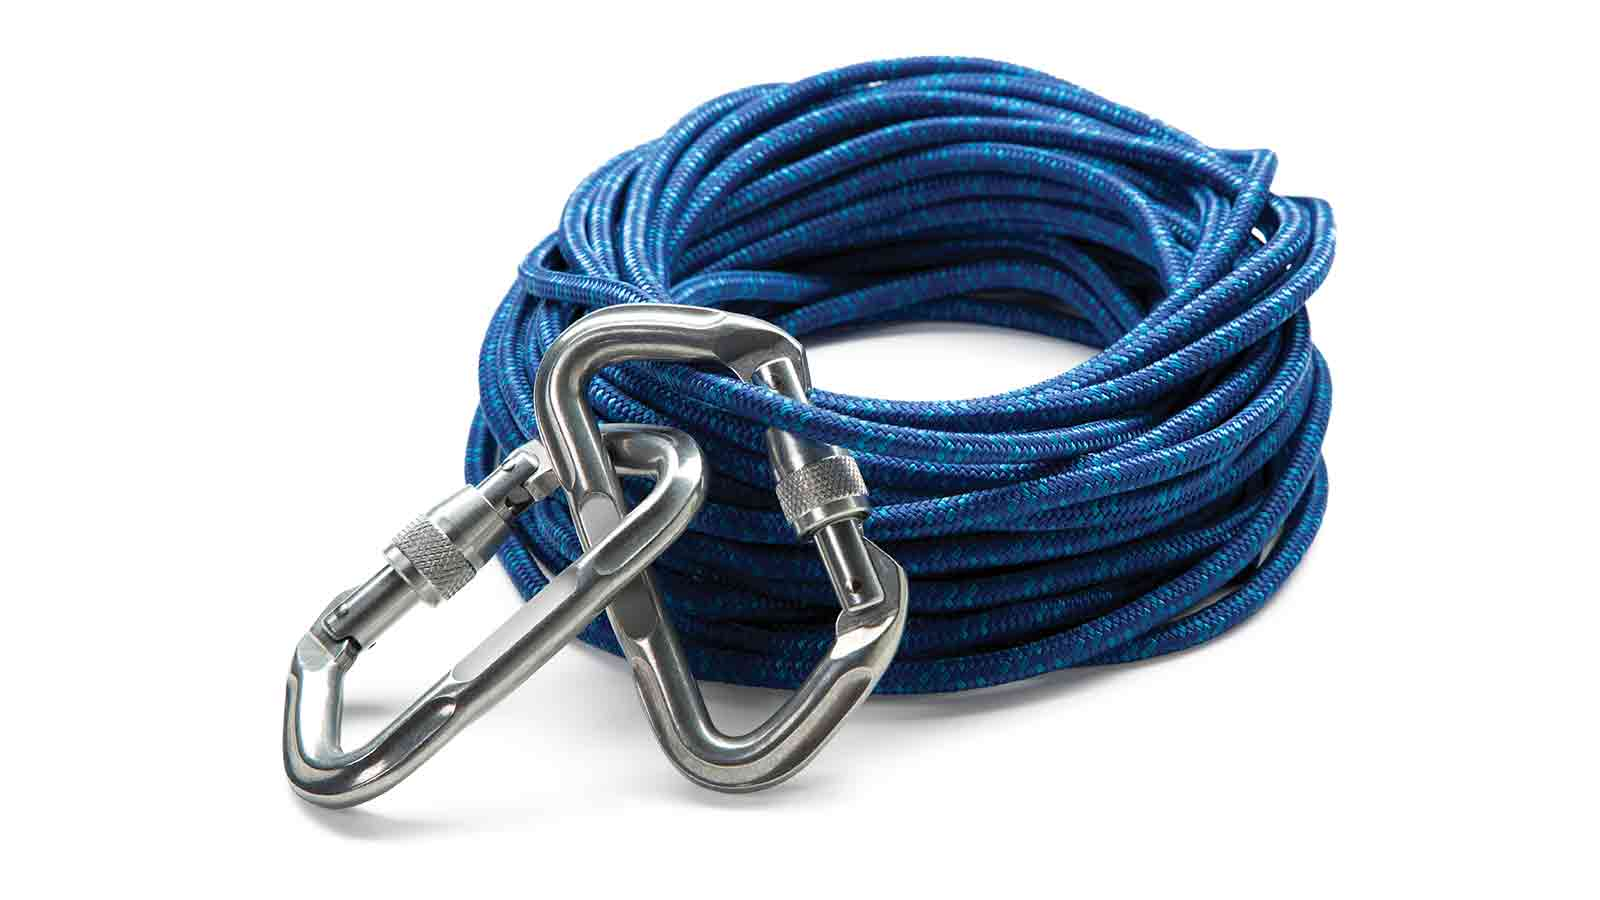 Rope and belay